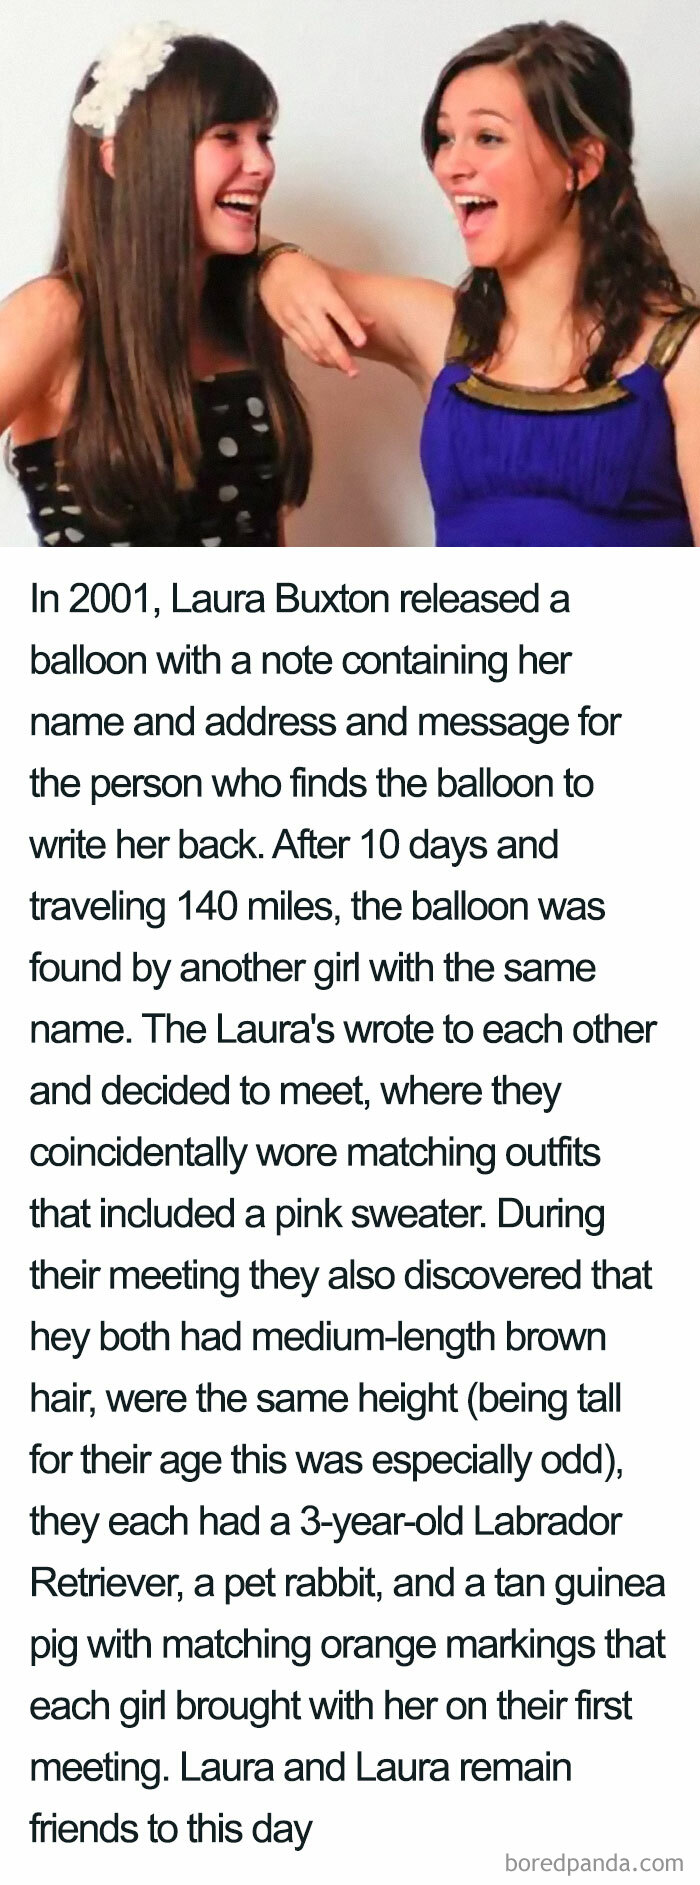 The Laura Buxton Coincidence